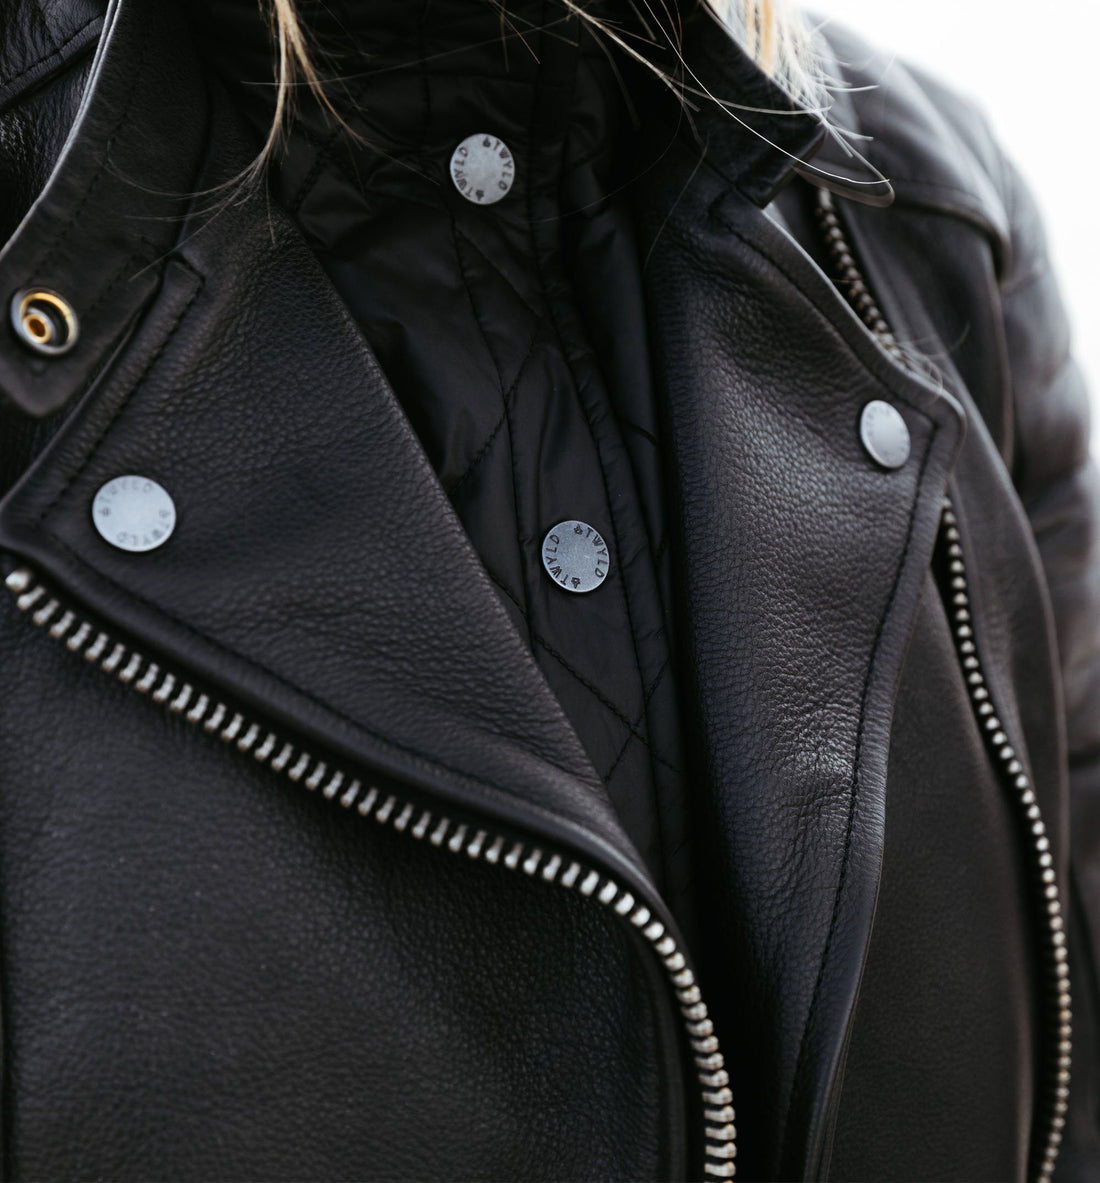 Atwyld Alltime 2.0 Moto Jacket - Outerwear - Iron and Resin